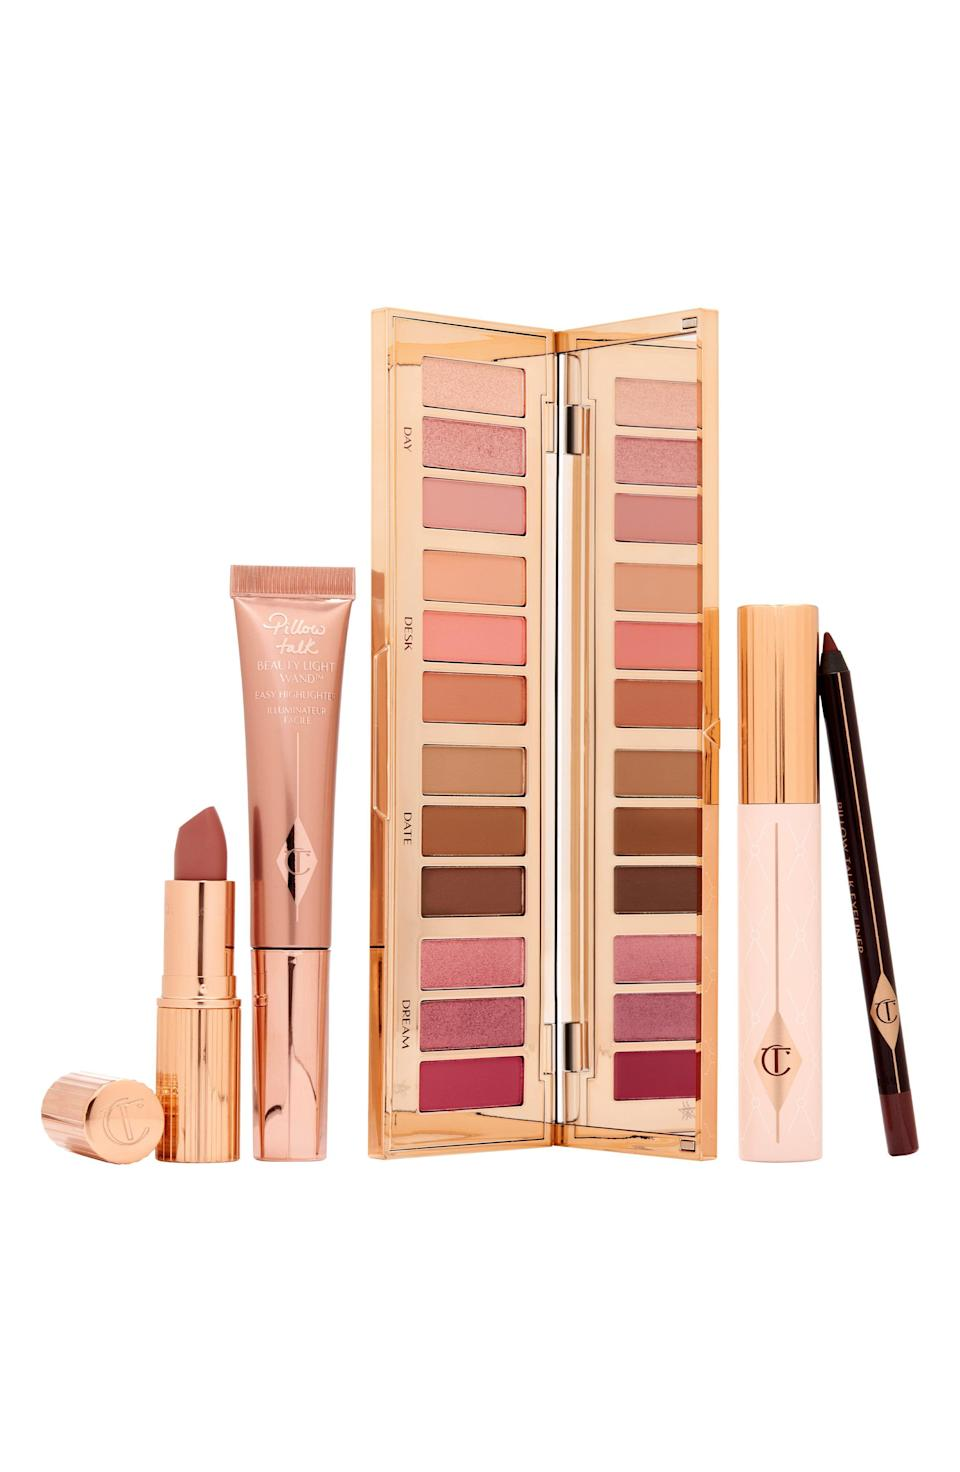 """<p><strong>Charlotte Tilbury</strong></p><p>nordstrom.com</p><p><a href=""""https://go.redirectingat.com?id=74968X1596630&url=https%3A%2F%2Fwww.nordstrom.com%2Fs%2Fcharlotte-tilbury-full-size-pillow-talk-lip-cheek-eye-set-203-value%2F5911670&sref=https%3A%2F%2Fwww.harpersbazaar.com%2Fbeauty%2Fg36991550%2Fnordstrom-anniversary-sale-beauty-deals%2F"""" rel=""""nofollow noopener"""" target=""""_blank"""" data-ylk=""""slk:Shop Now"""" class=""""link rapid-noclick-resp"""">Shop Now</a></p><p><strong>Sale: $135</strong></p><p><strong>Value: $203</strong></p><p>Amal Clooney and Kate Moss both exclusively wore Charlotte Tilbury makeup on their wedding days. This set from the British makeup artist centers around the brand's culty Pillow Talk lip color. It includes a 12-shade limited edition eyeshadow palette, a Matte Revolution Lipstick, the Beauty Light Wand (a nude-pink highlighter blush), the Push-Up Lashes Mascara, and an eyeliner. <br></p>"""